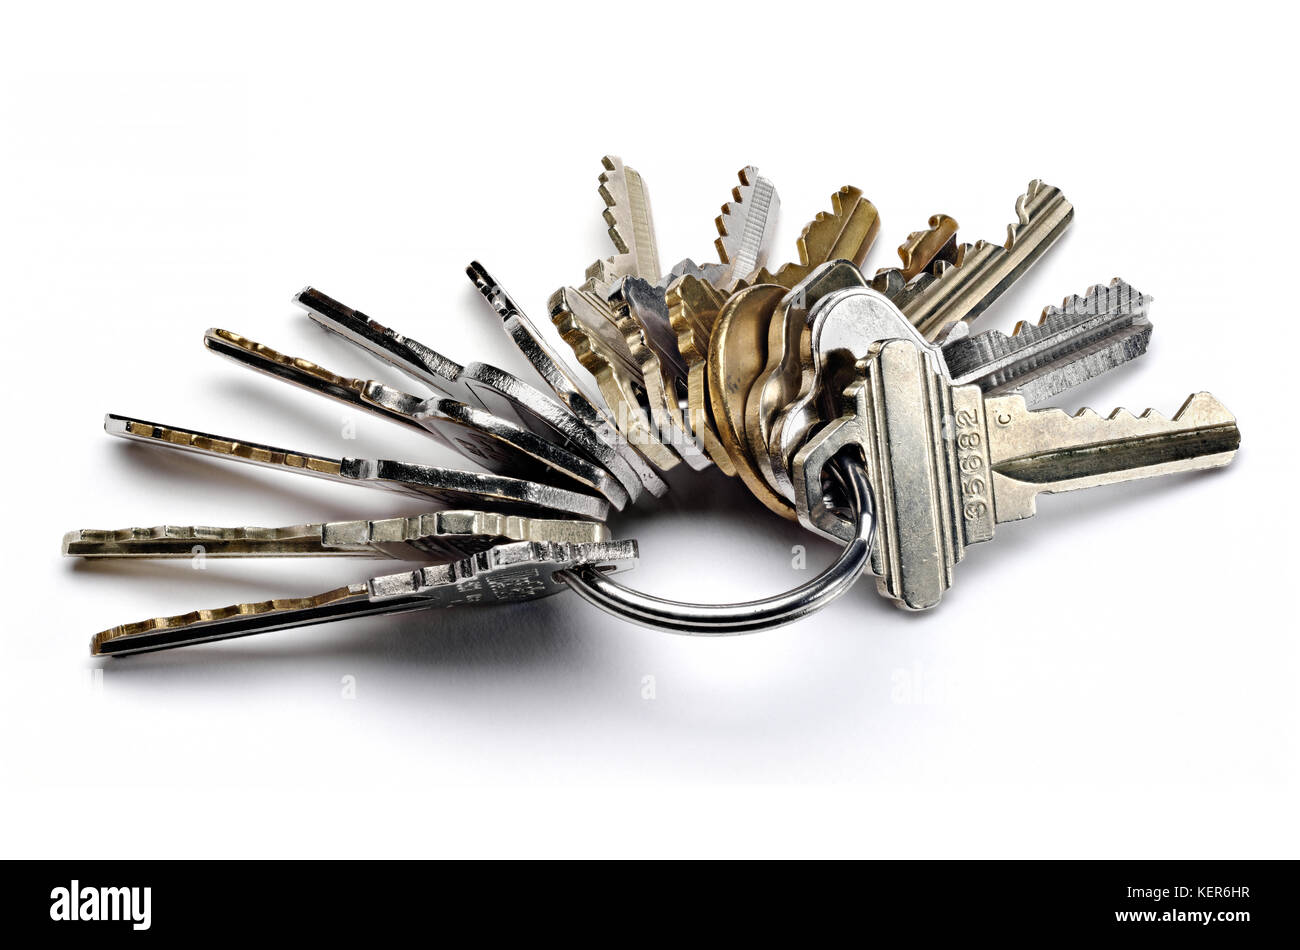 Close up of metal key ring with many worn keys isolated on white - Stock Image